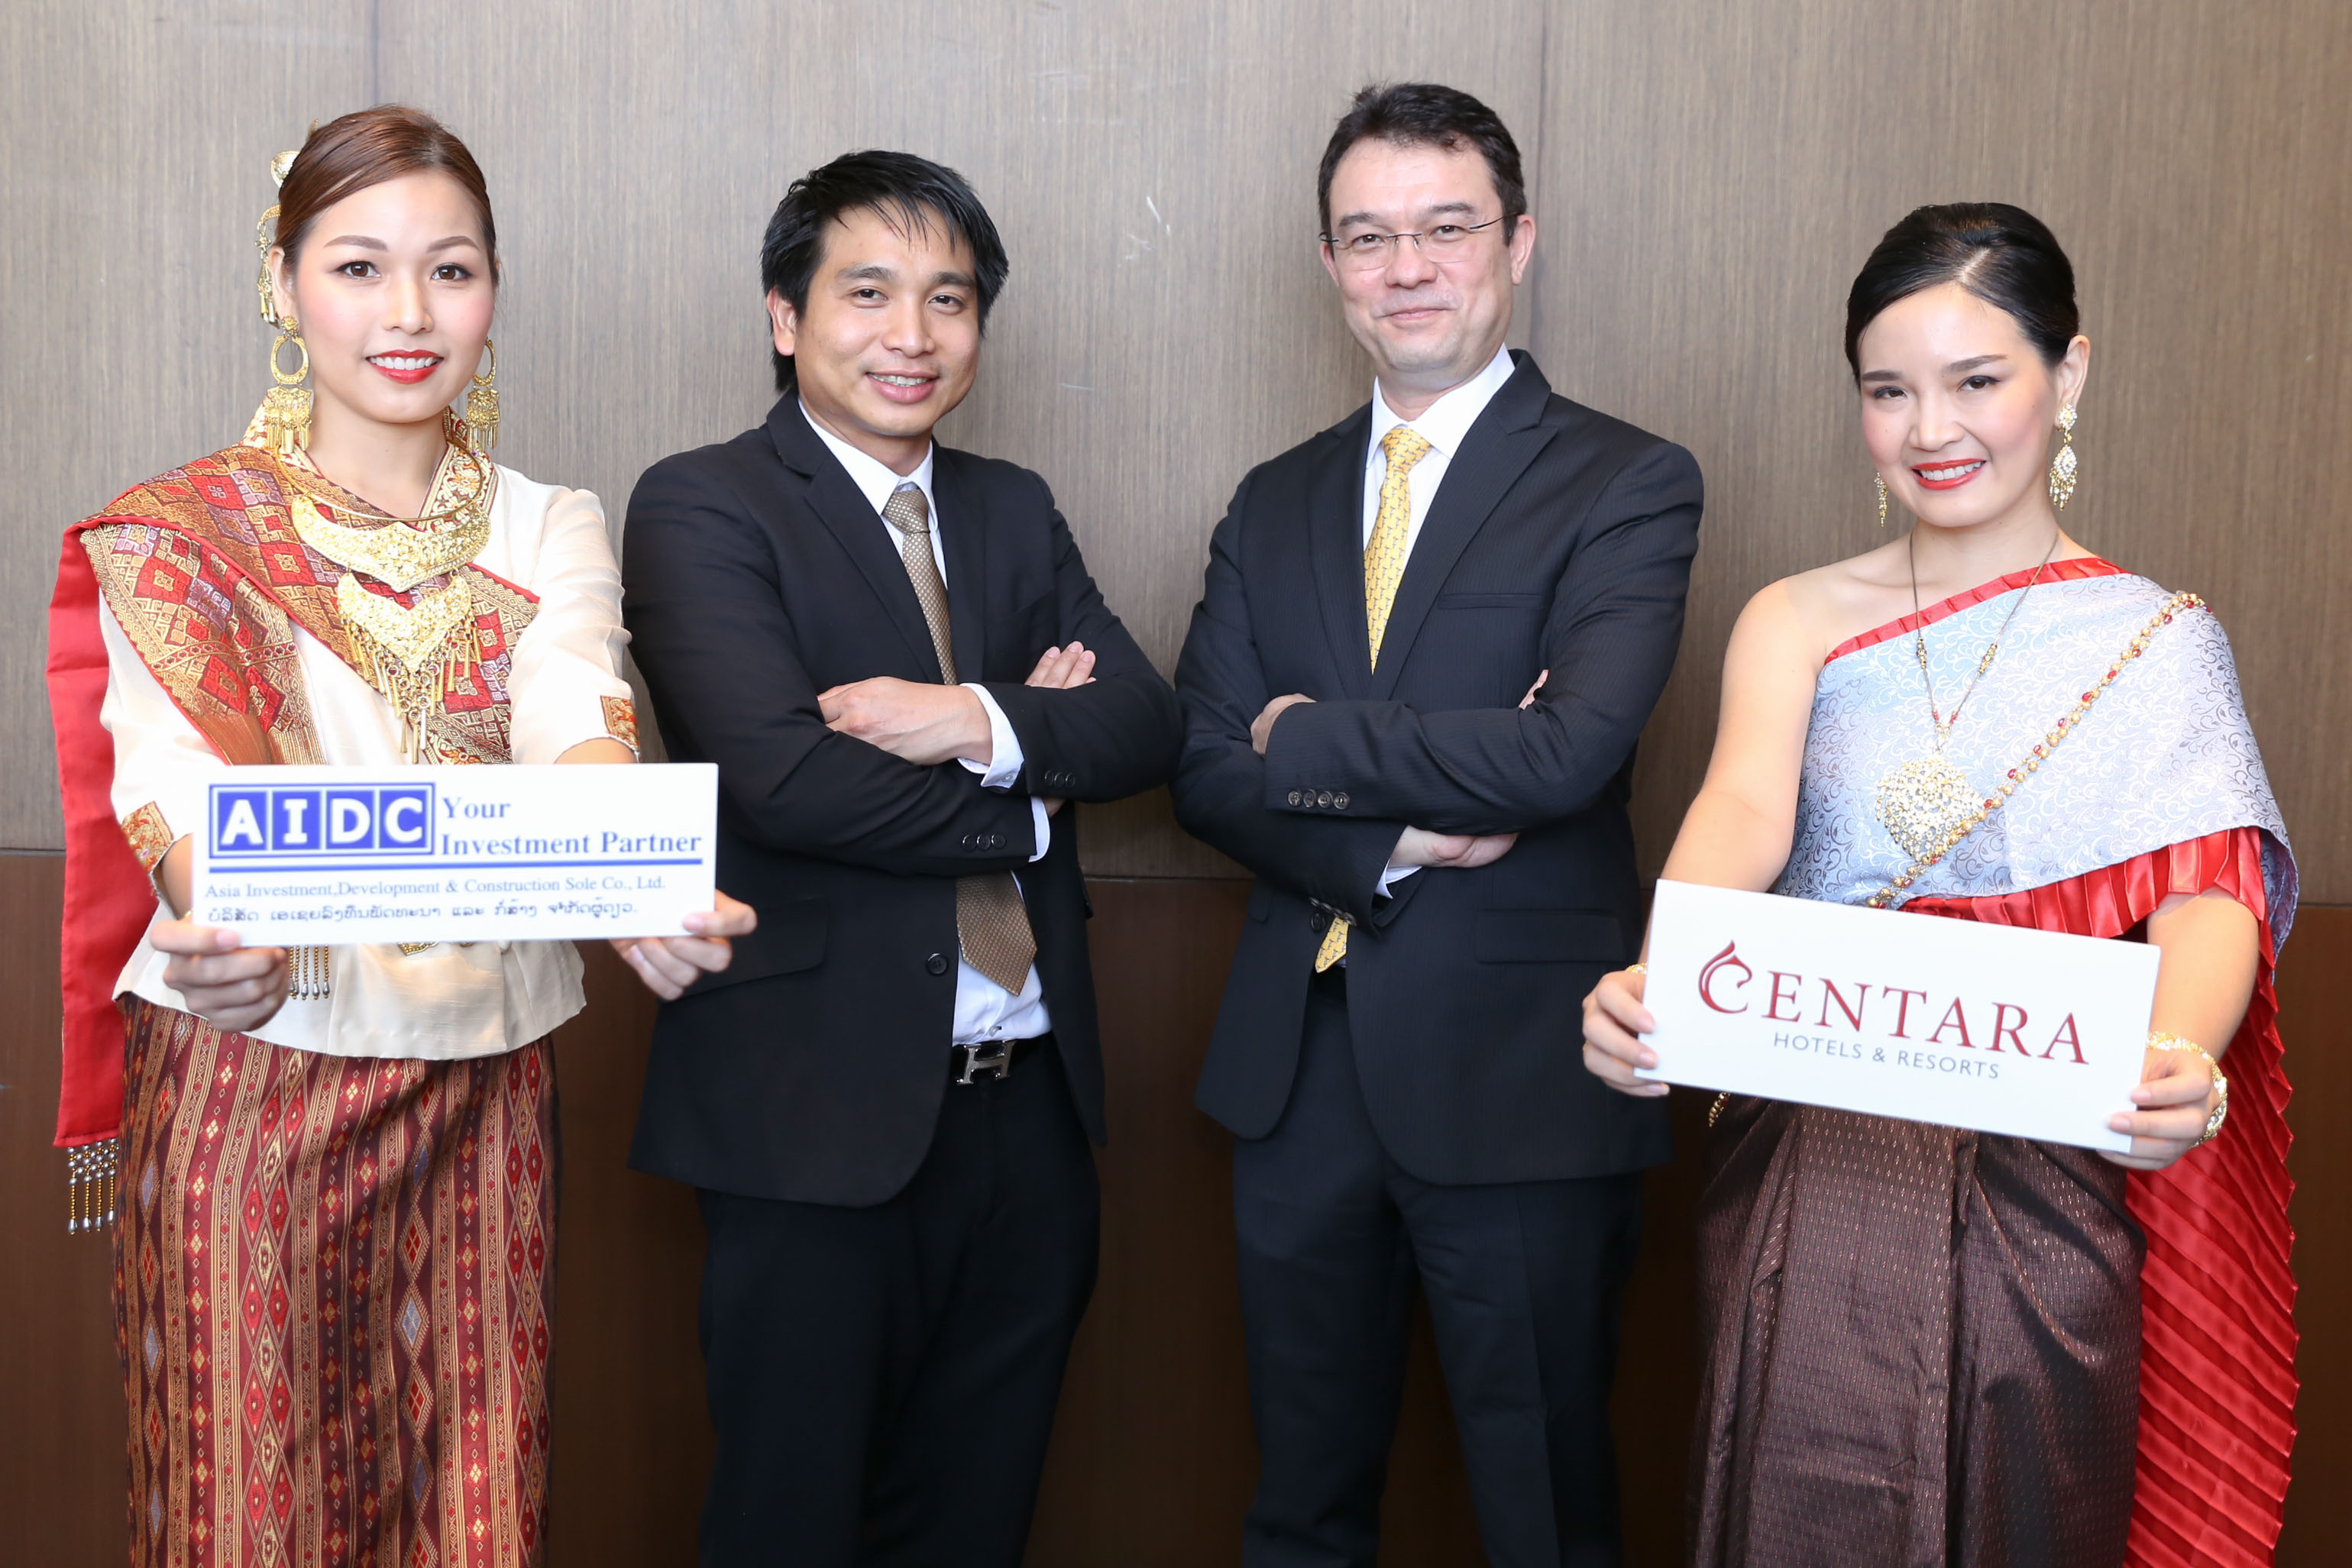 Centara-strejker-management-deal-i-Laos